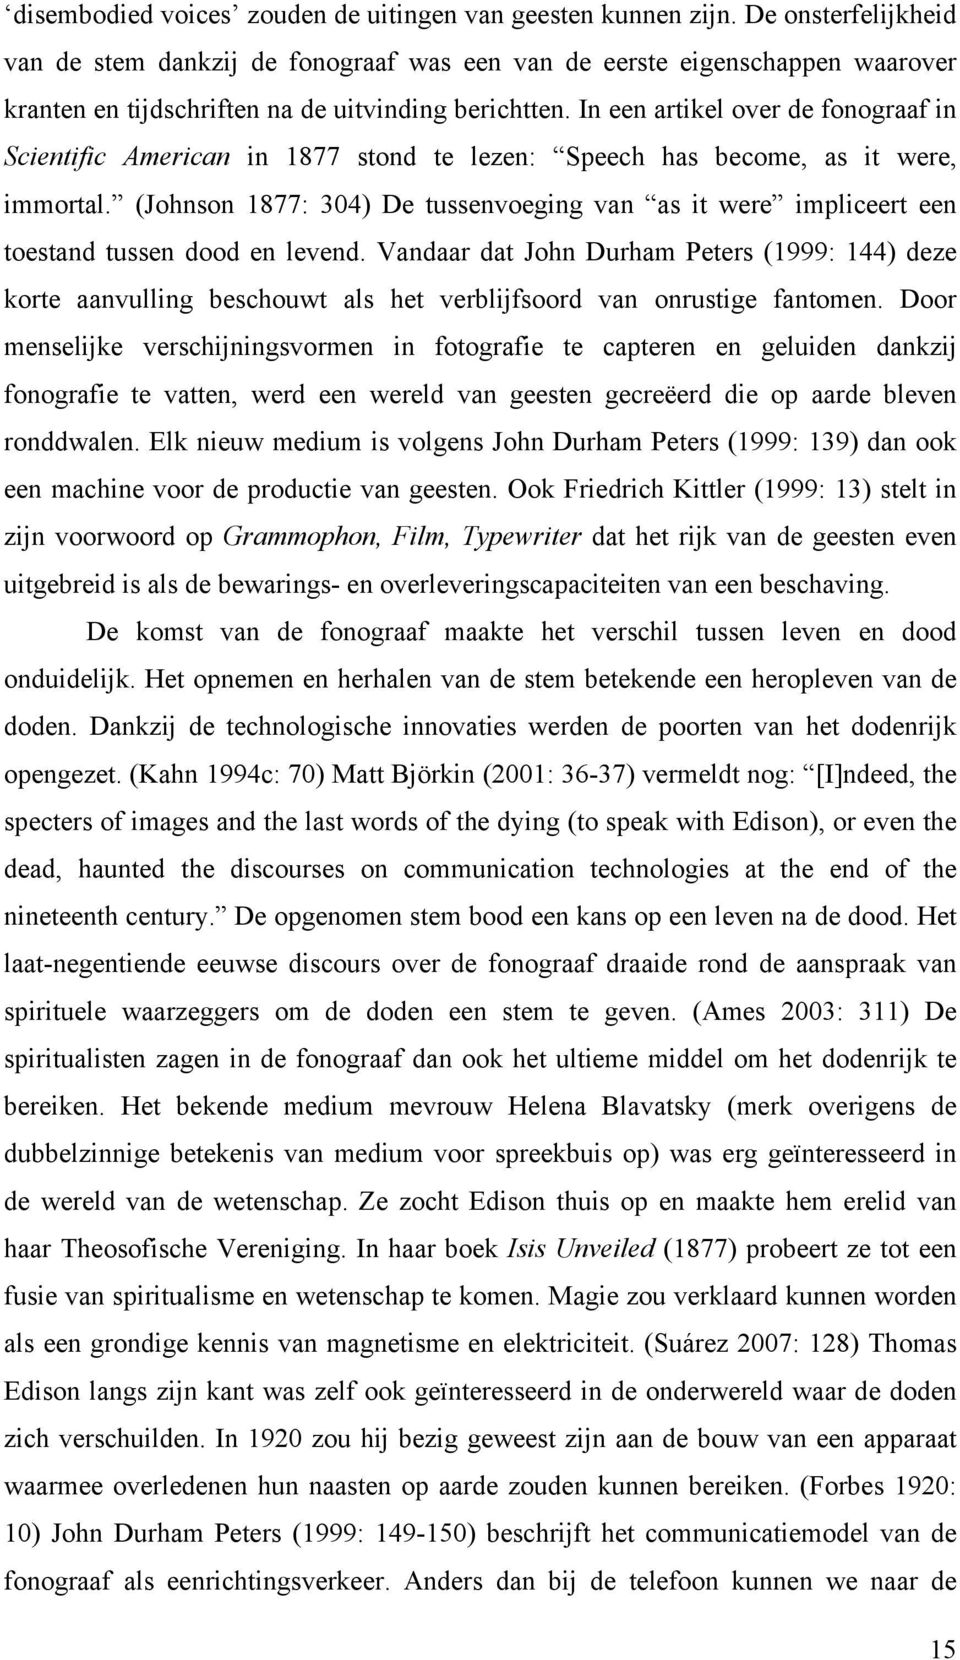 In een artikel over de fonograaf in Scientific American in 1877 stond te lezen: Speech has become, as it were, immortal.